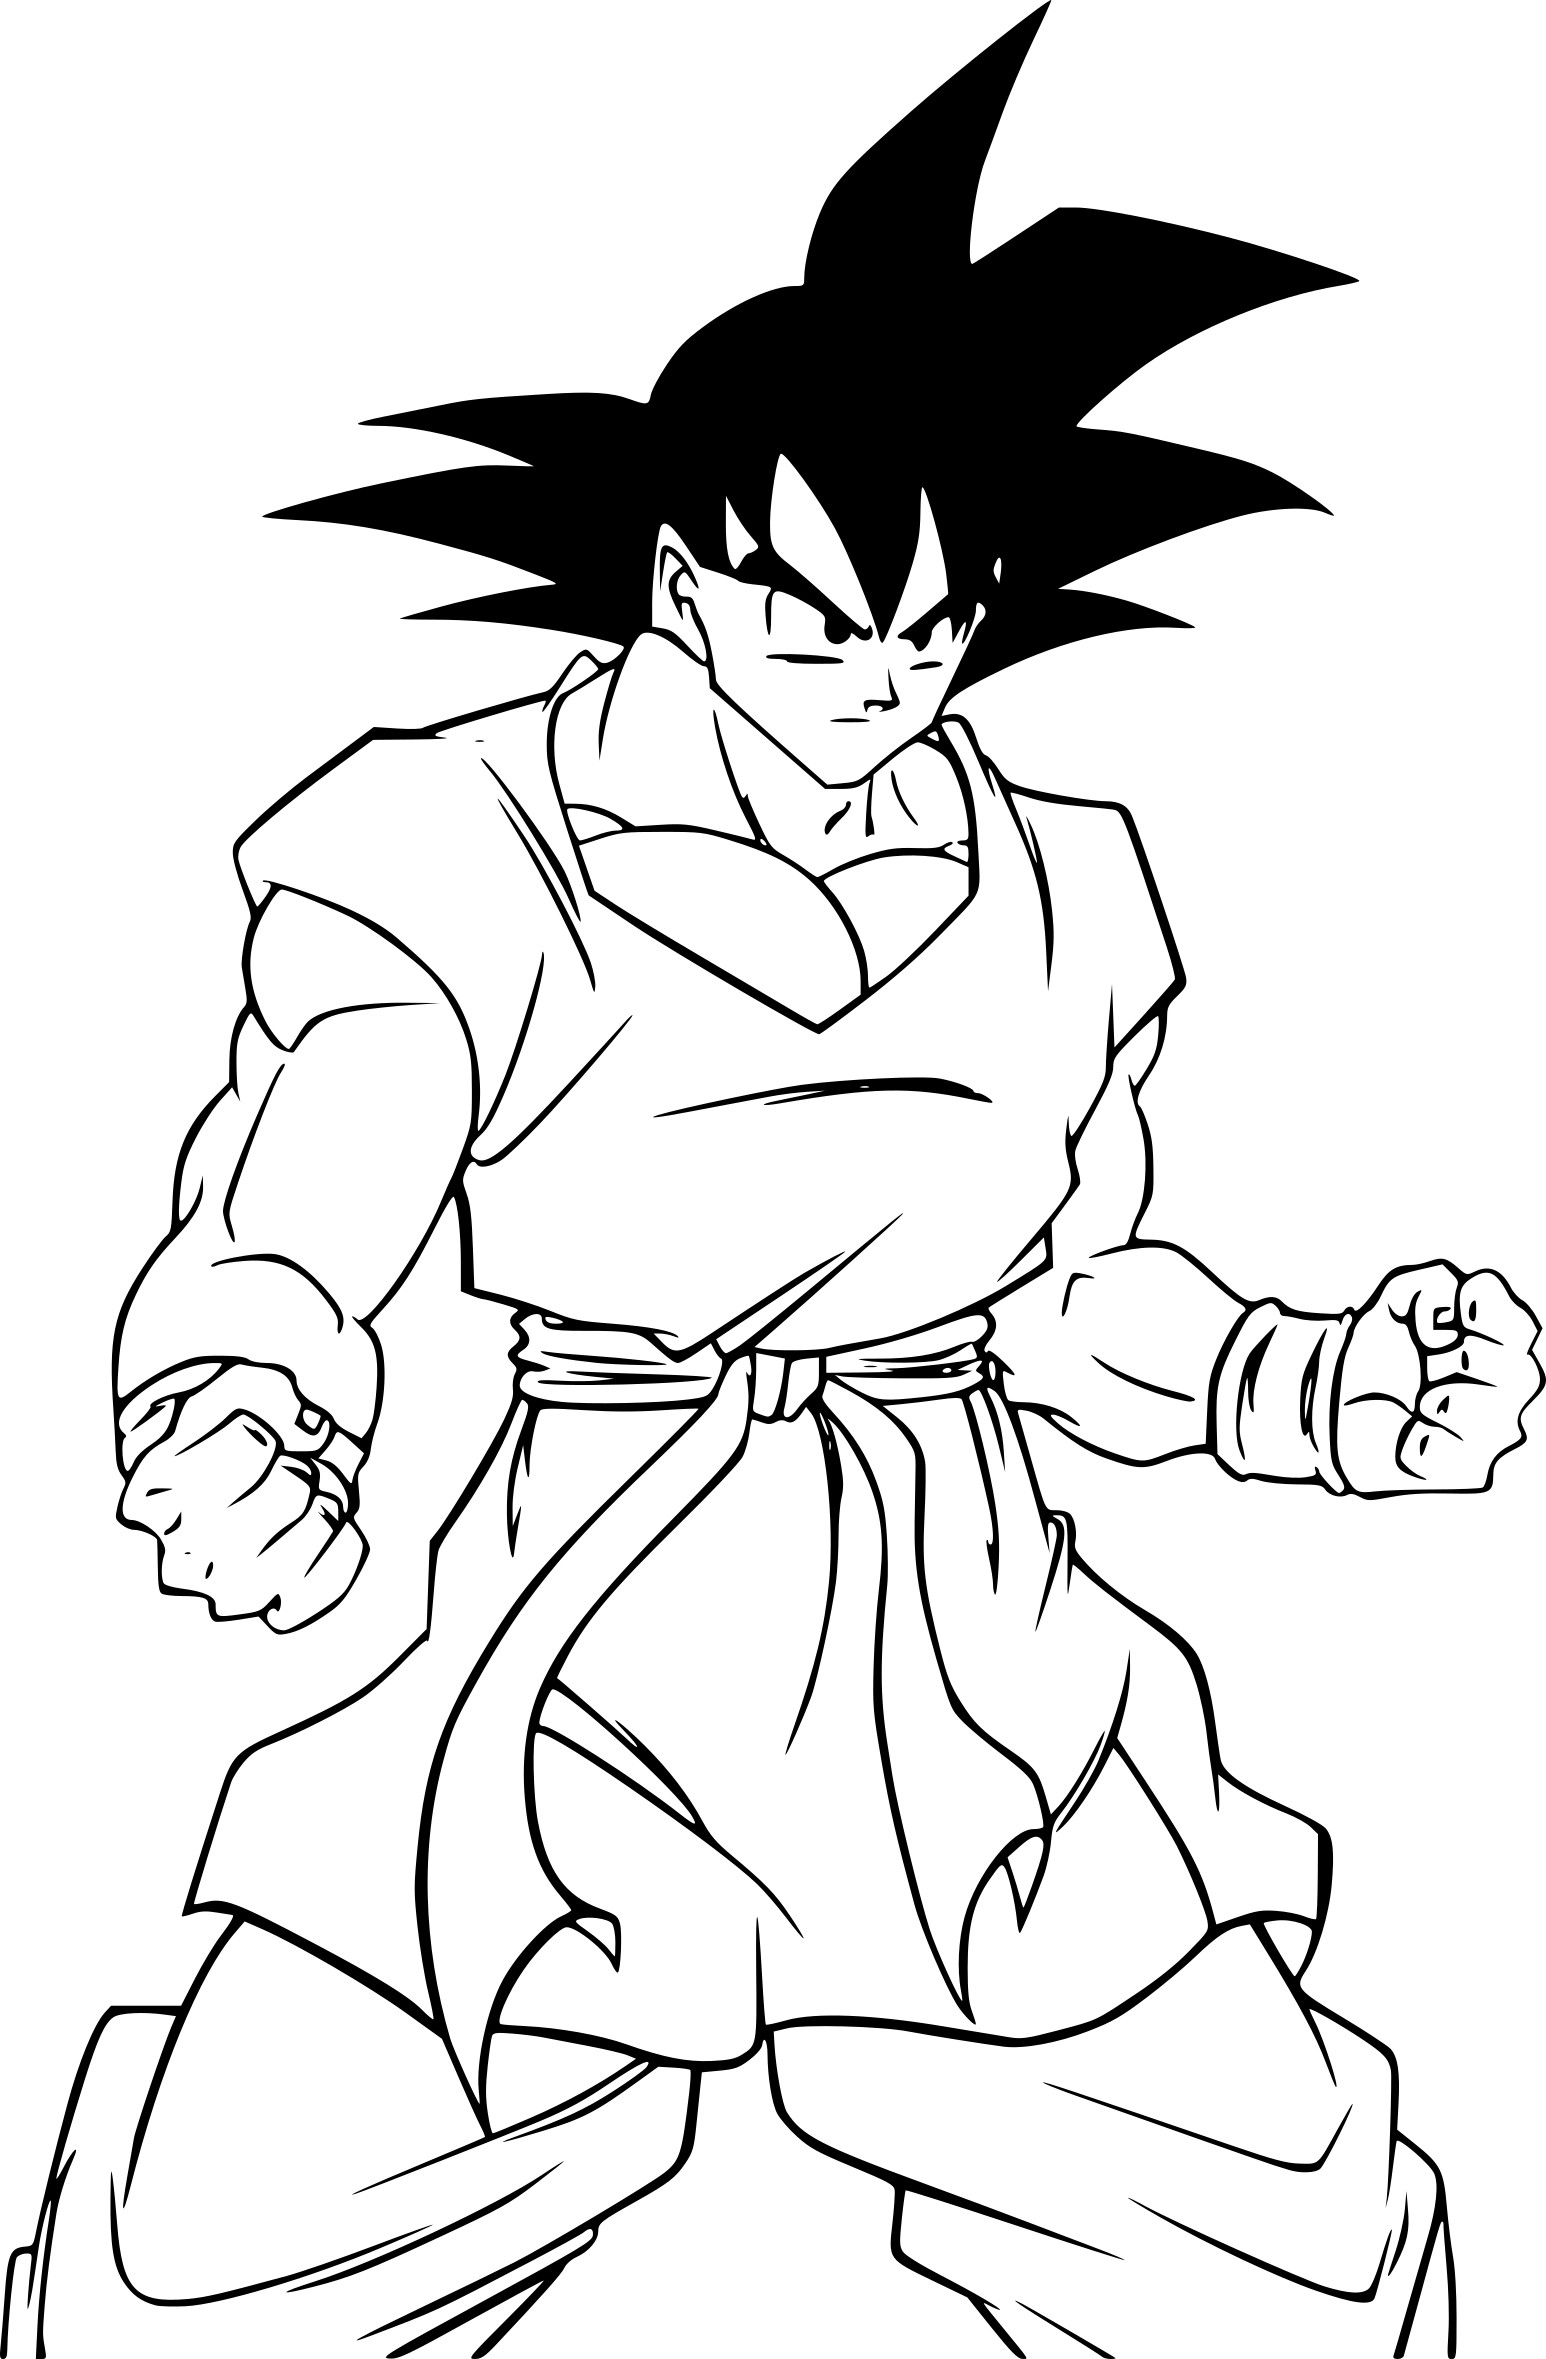 Coloriage son goku dragon ball z imprimer sur coloriages - Modele dessin dragon ...